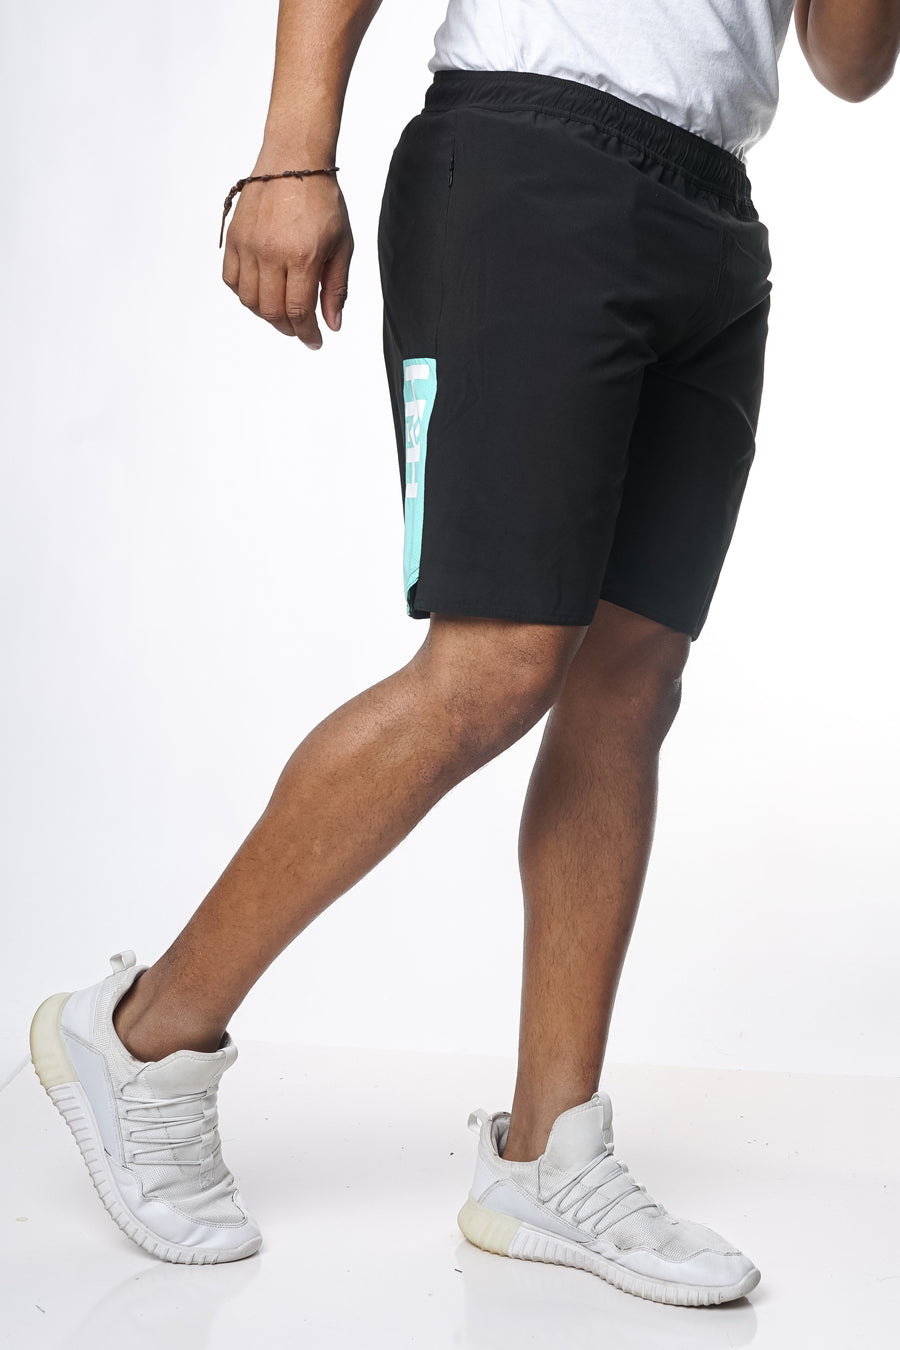 HDMH Training Shorts - Black/Mint